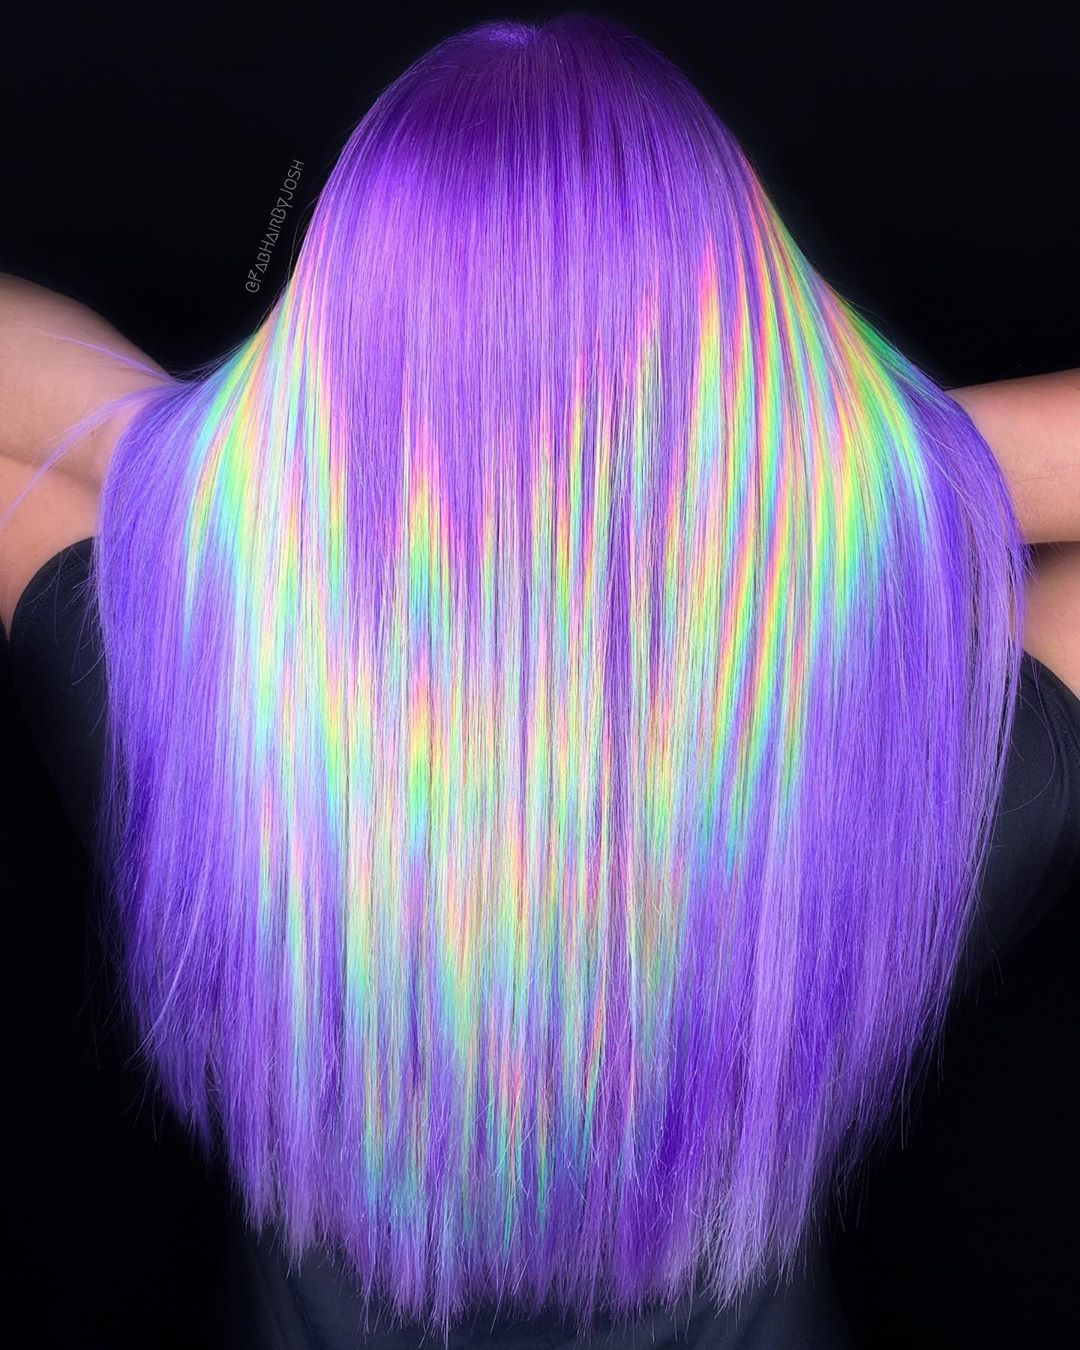 There's now a Holographic Hair Craze and its Mesme